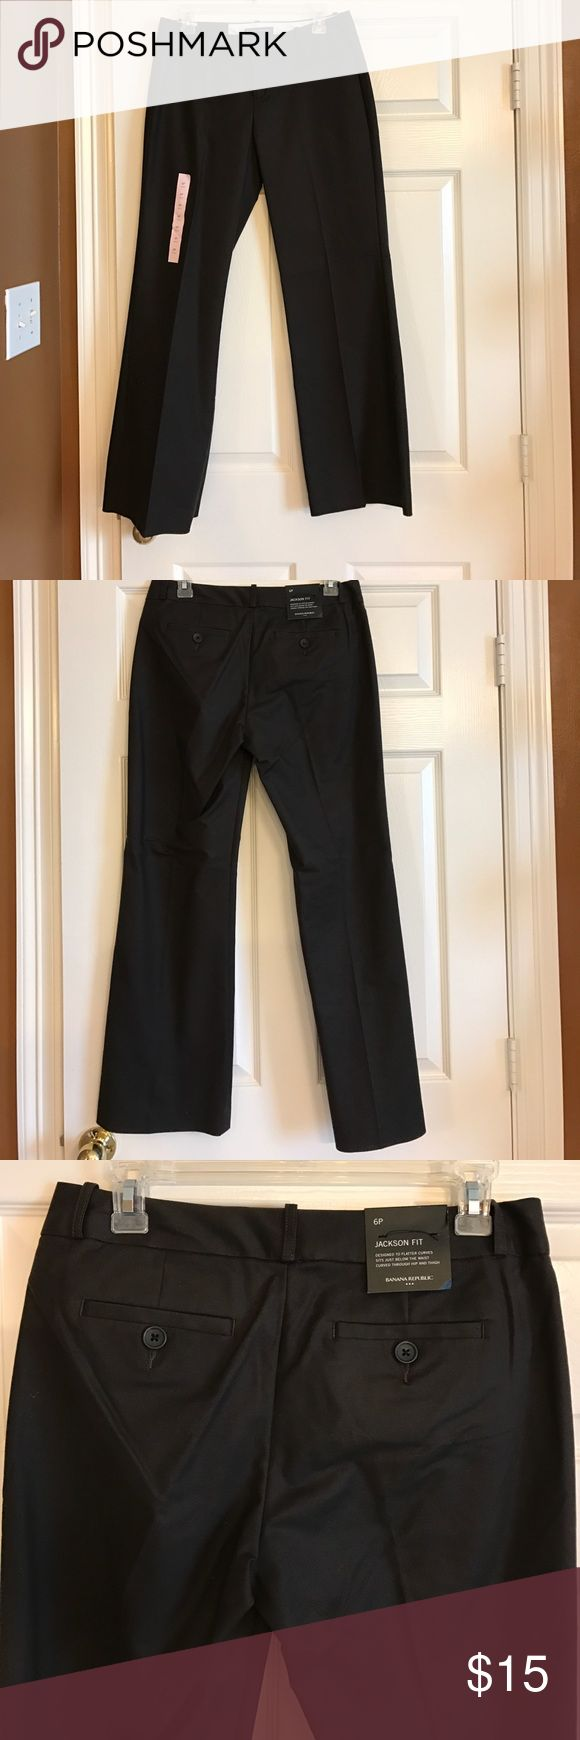 NWT Banana Republic brown slacks Size 6 PETITE NWT Banana Republic brown slacks Size 6 PETITE NEVER WORN! Make offers! Banana Republic Pants Trousers